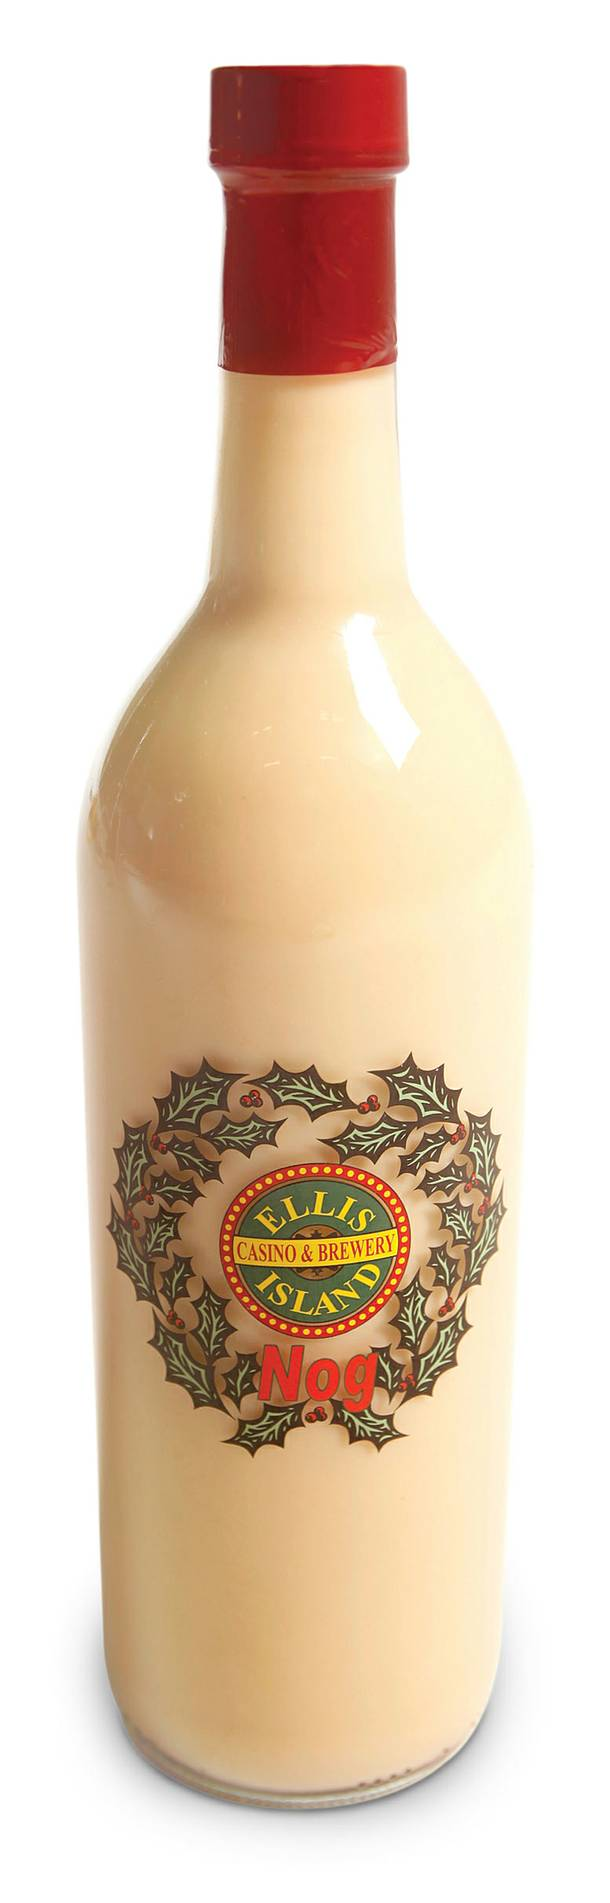 Ellis Island eggnog photographed Monday, December 19, 2011.